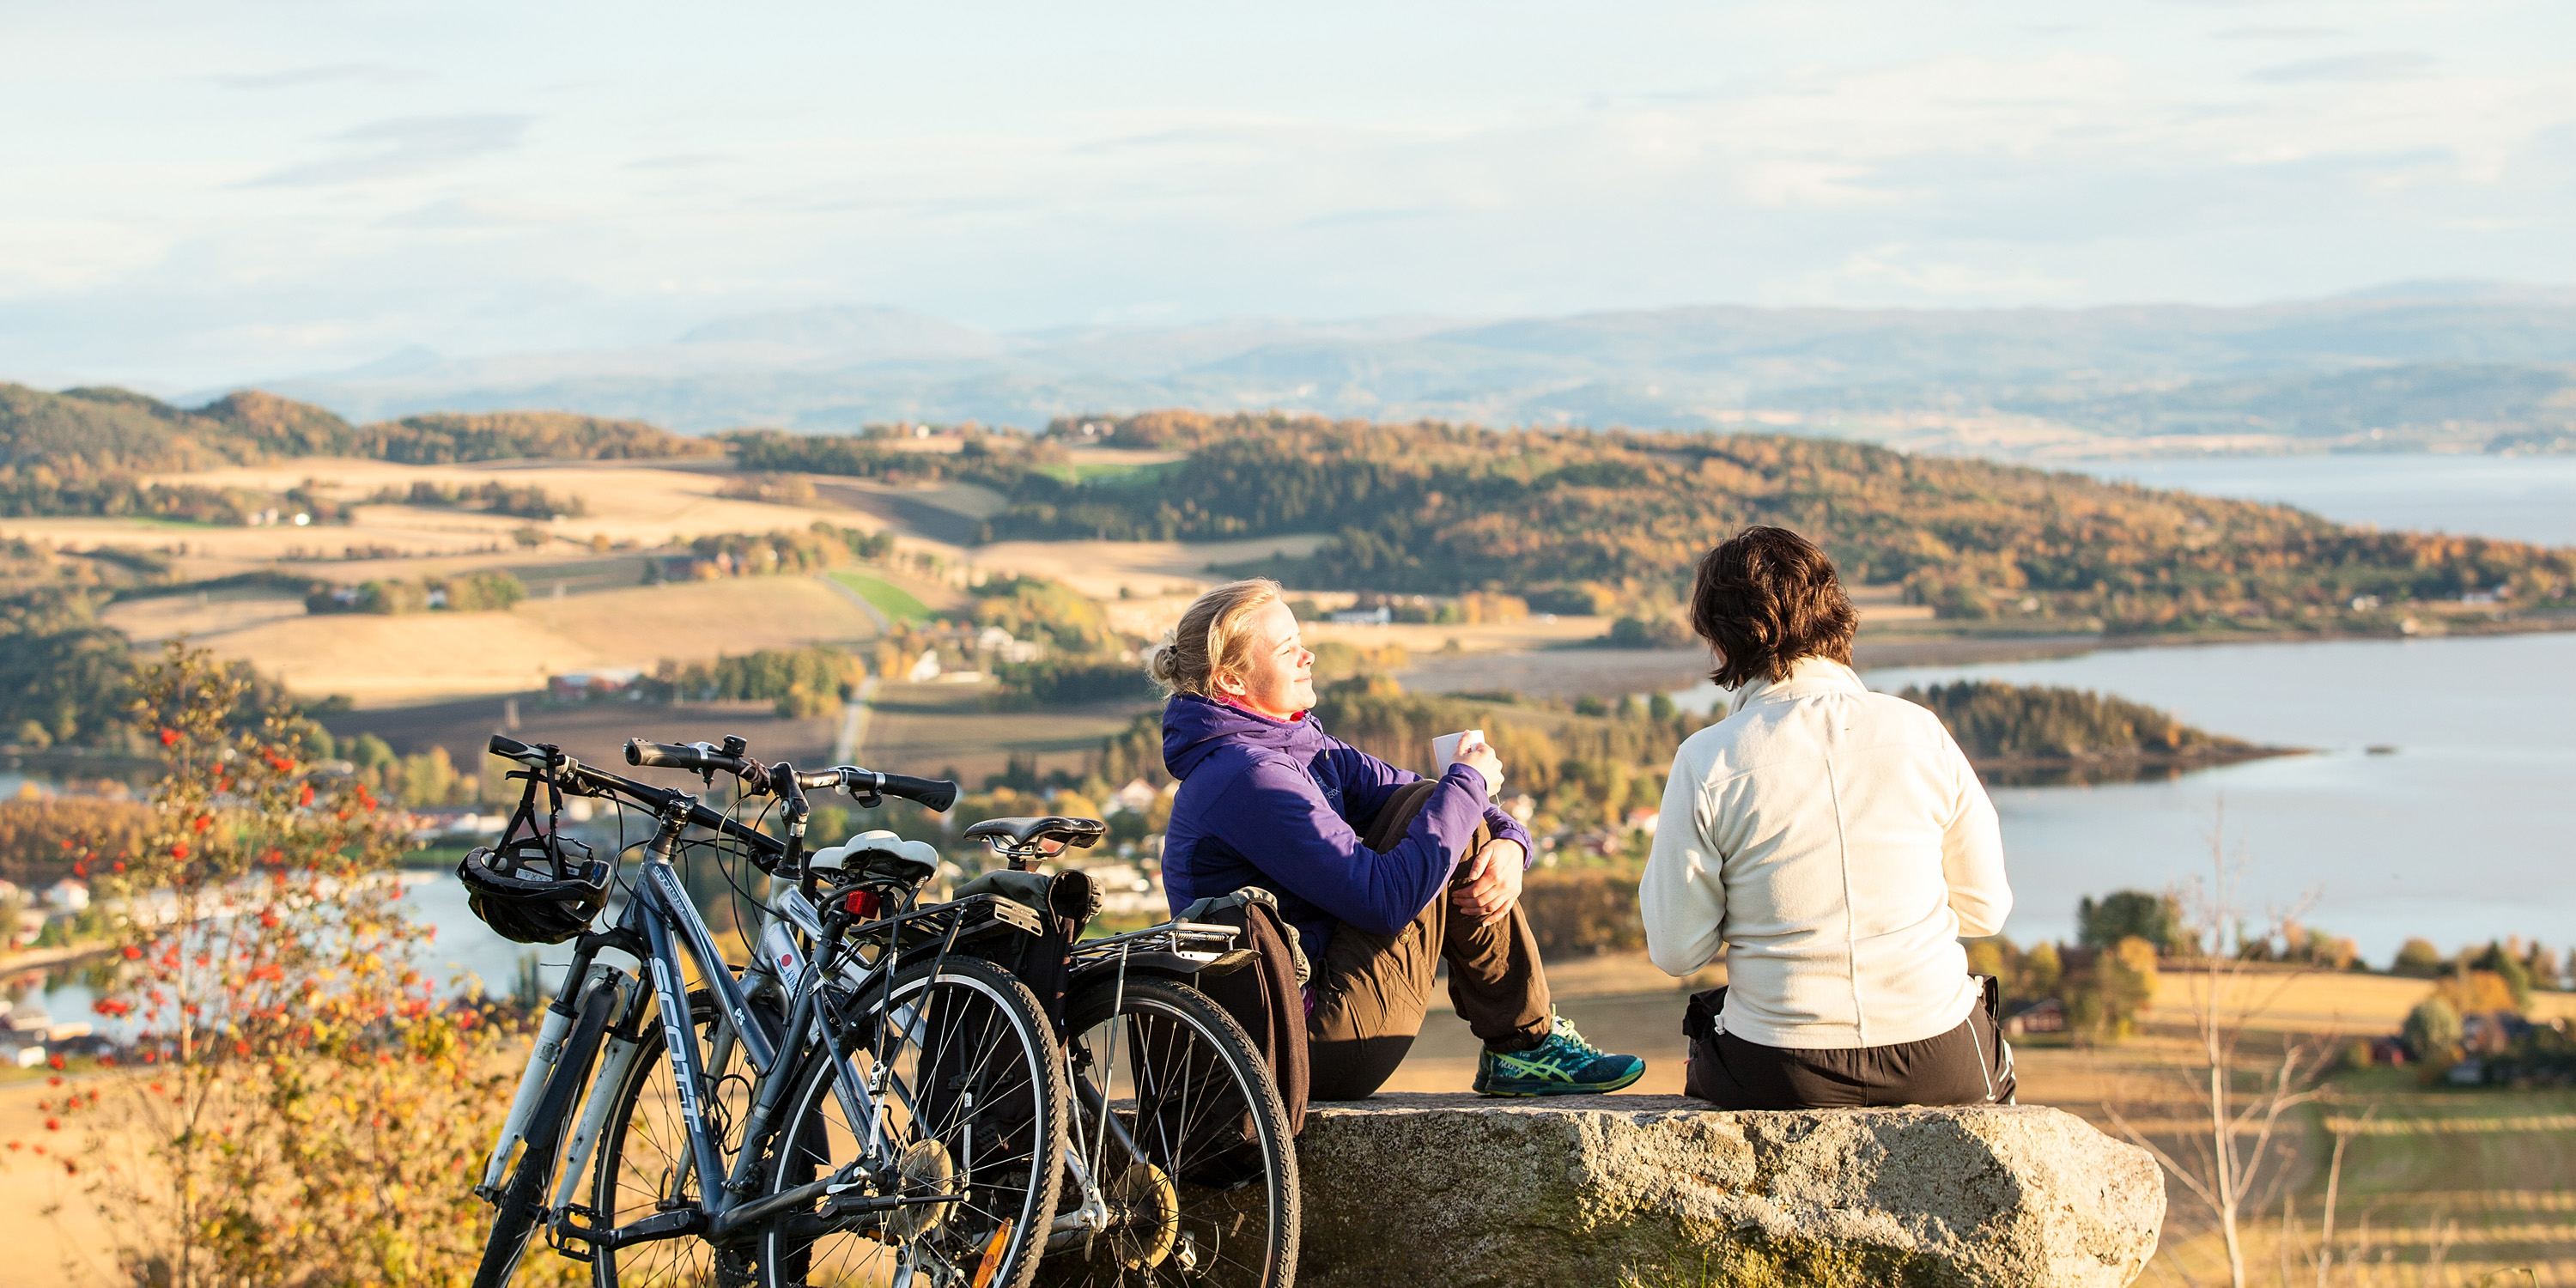 Cyclists taking a break and enjoying the panoramic view of the Trondheimfjorden at Øyna. Copyright: WilLee Wright